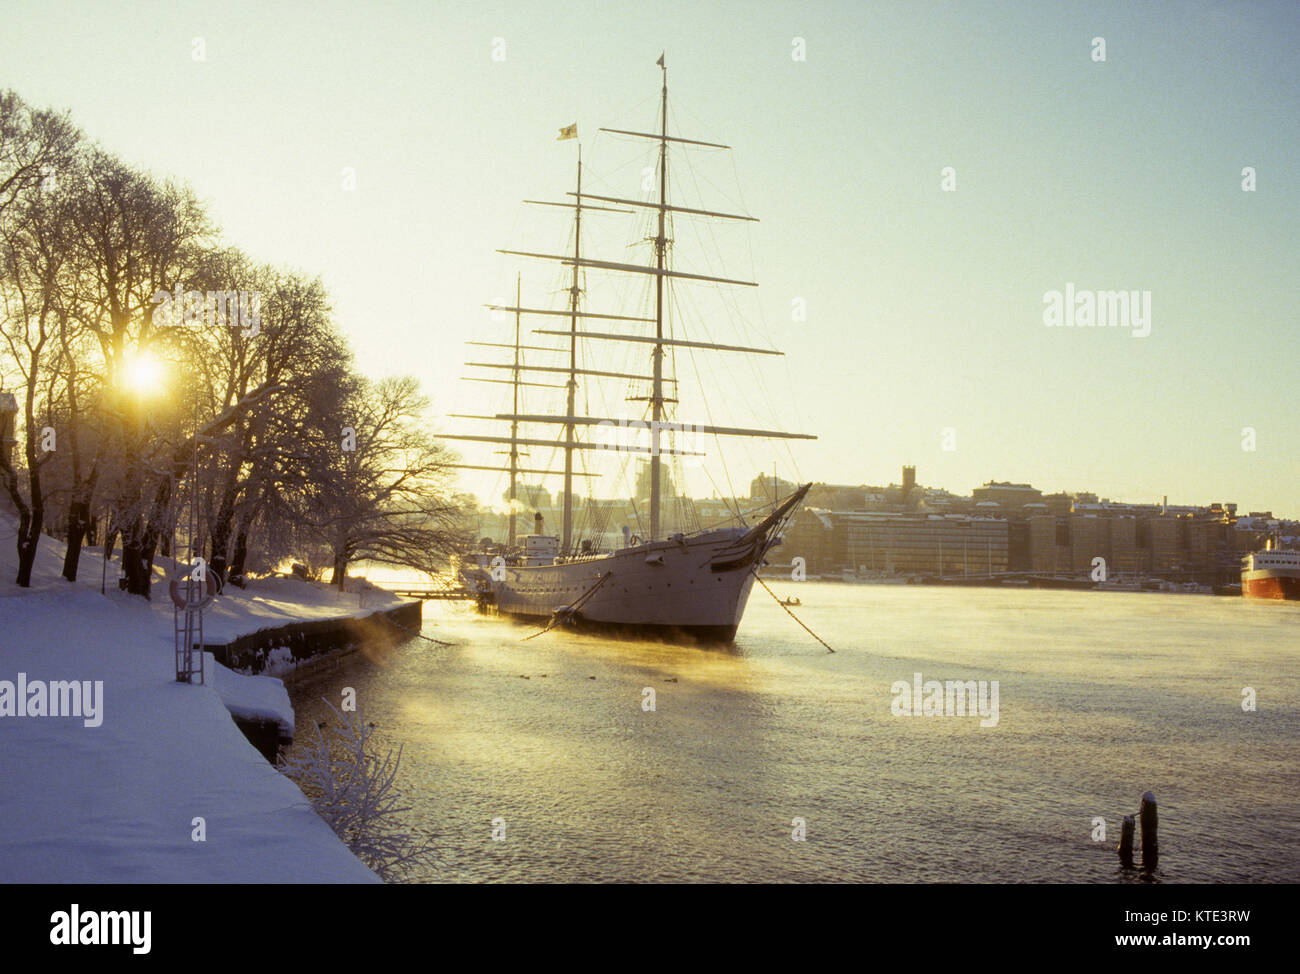 AF CHAPMAN hostels in Stockholm in winterlight and seascape 2009 former training ship for Swedish navy built 1988 - Stock Image